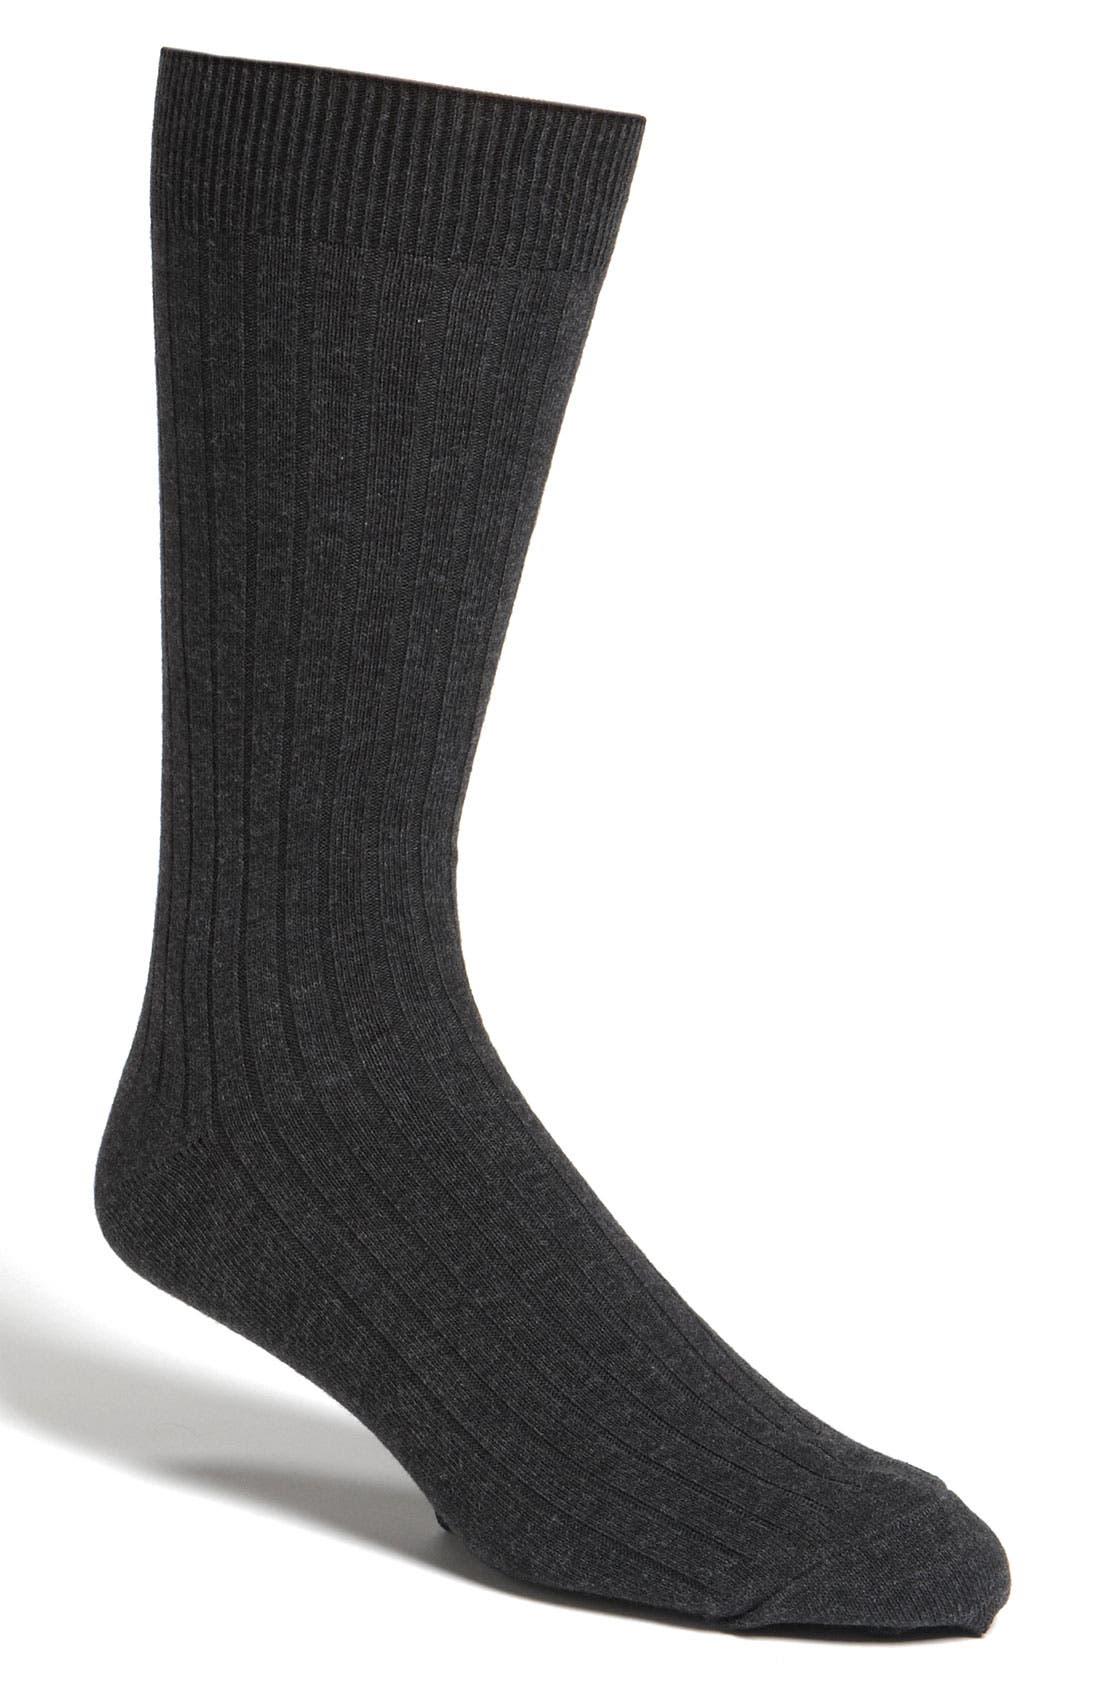 Cotton Blend Socks,                             Main thumbnail 1, color,                             Black Heather